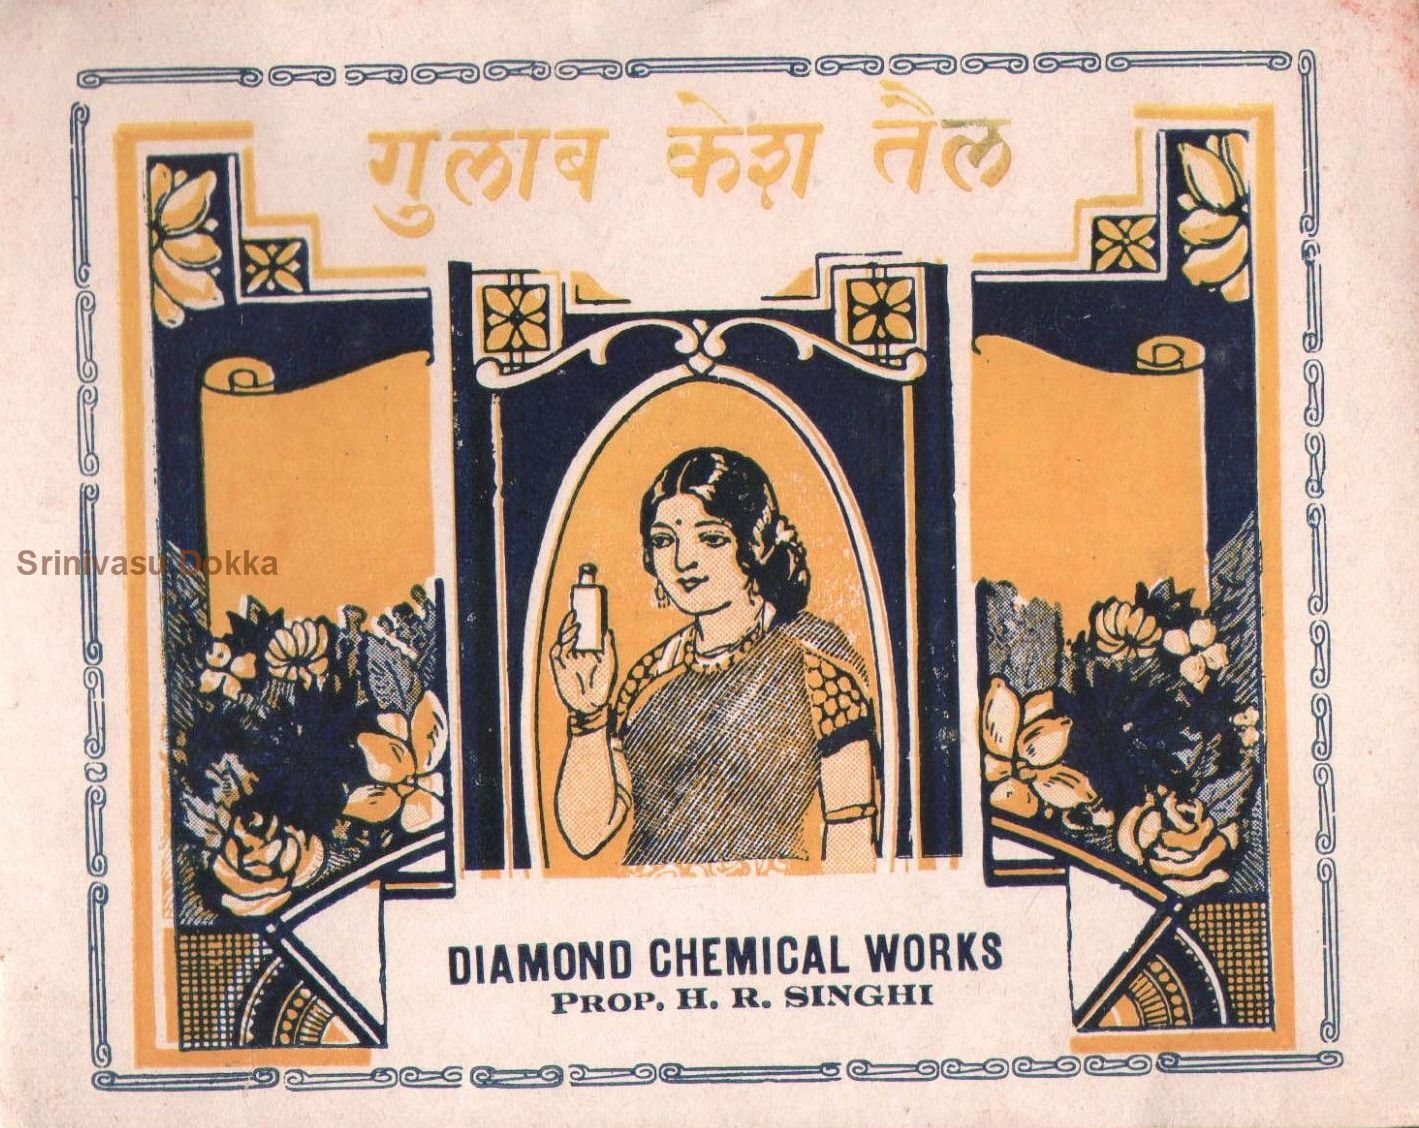 Heritage Of India Vintage Rose Brand Hair Oil Label In My Collection